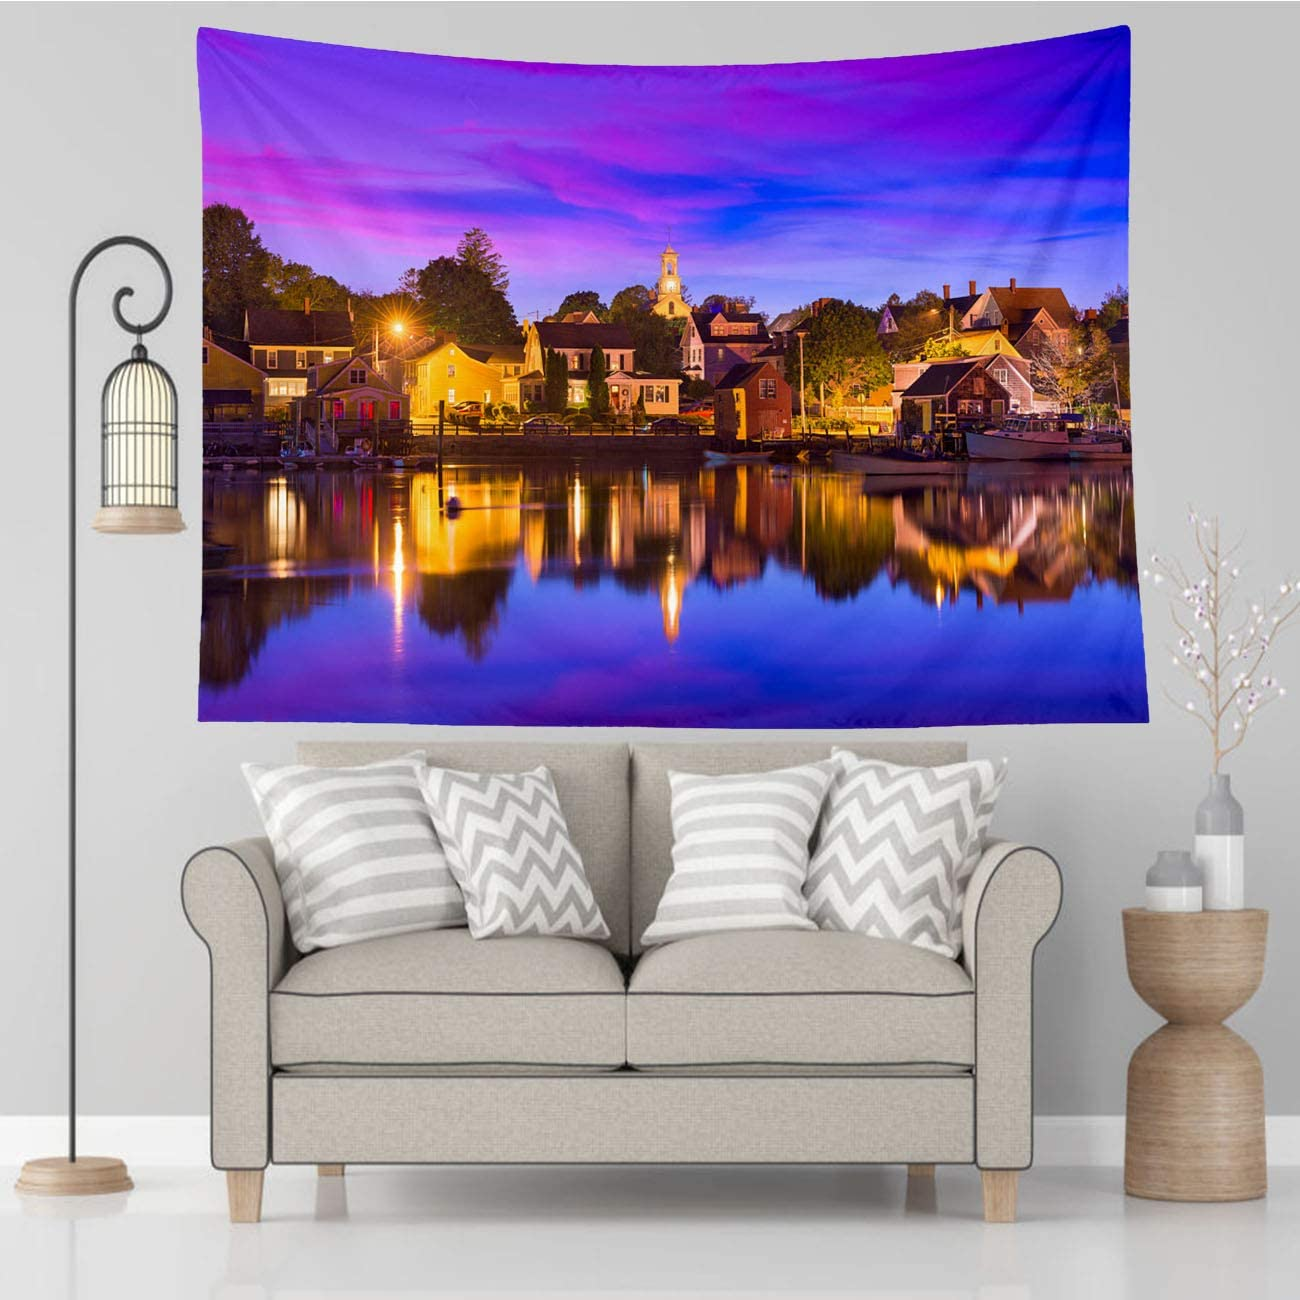 Vikes Nature Tapestry,Portsmouth New Hampshire,Tapestry Wall Hanging Art for Living Room Bedroom Home Decor,80x60 in